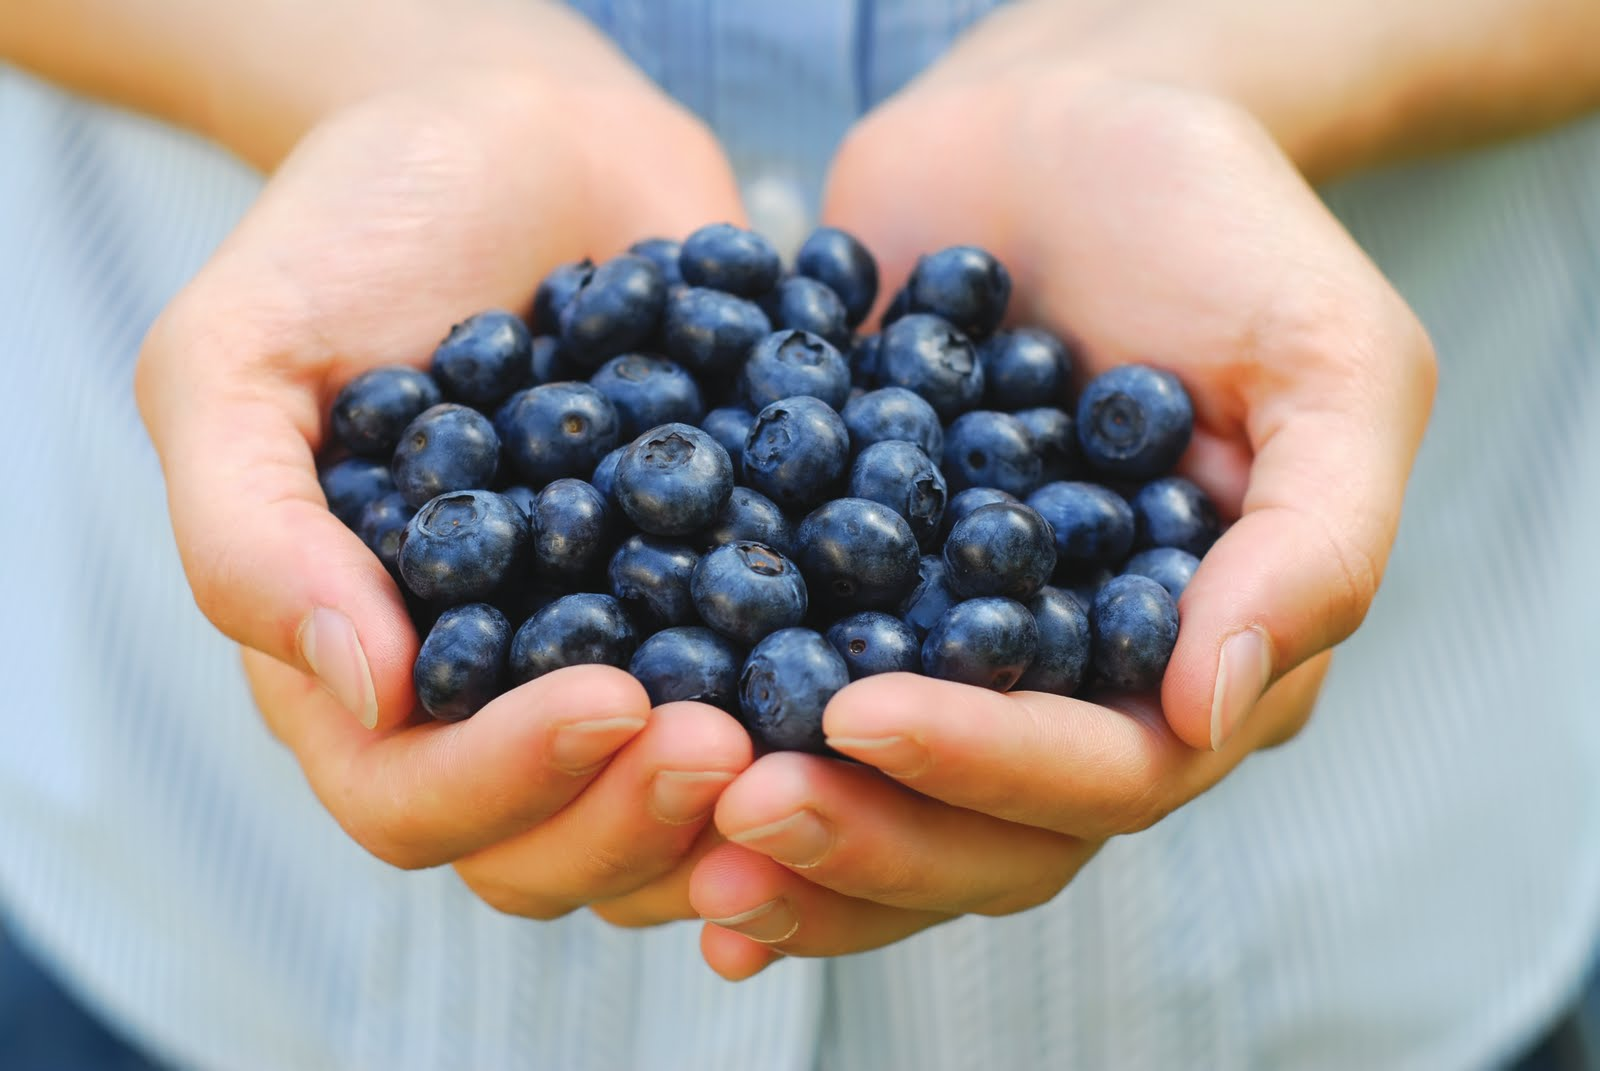 http://fitasfuck.files.wordpress.com/2014/02/blueberries-in-hand-shutterstock_8400148.jpg